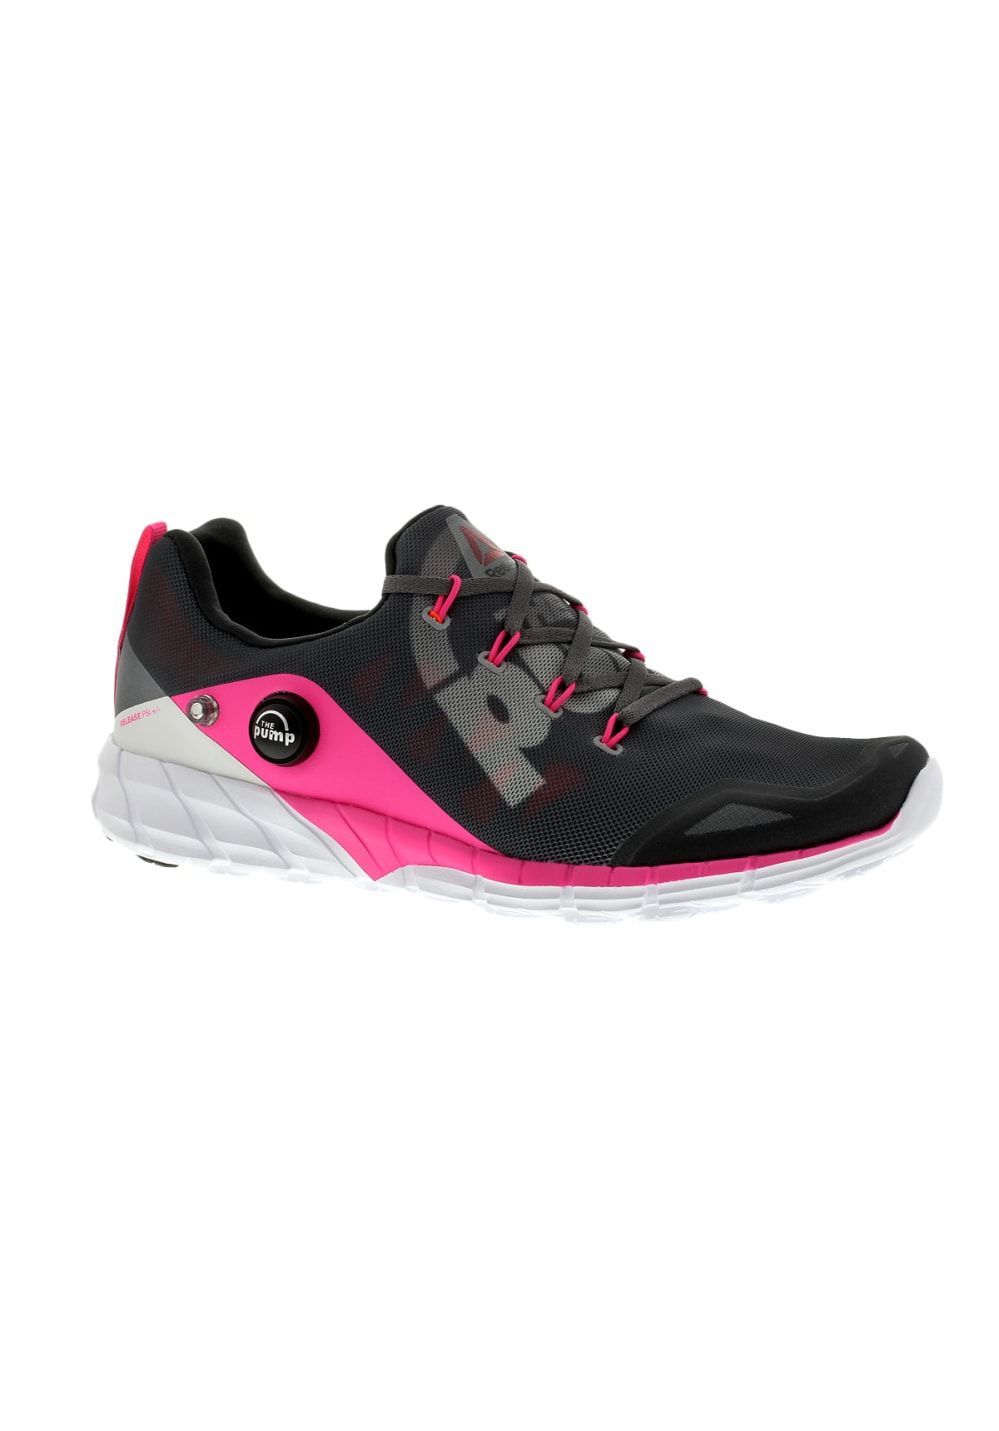 Next. -60%. Reebok. ZPump Fusion 2.0 - Running shoes for Women. Regular  Price  Save 60% €119.95 5829f9a75